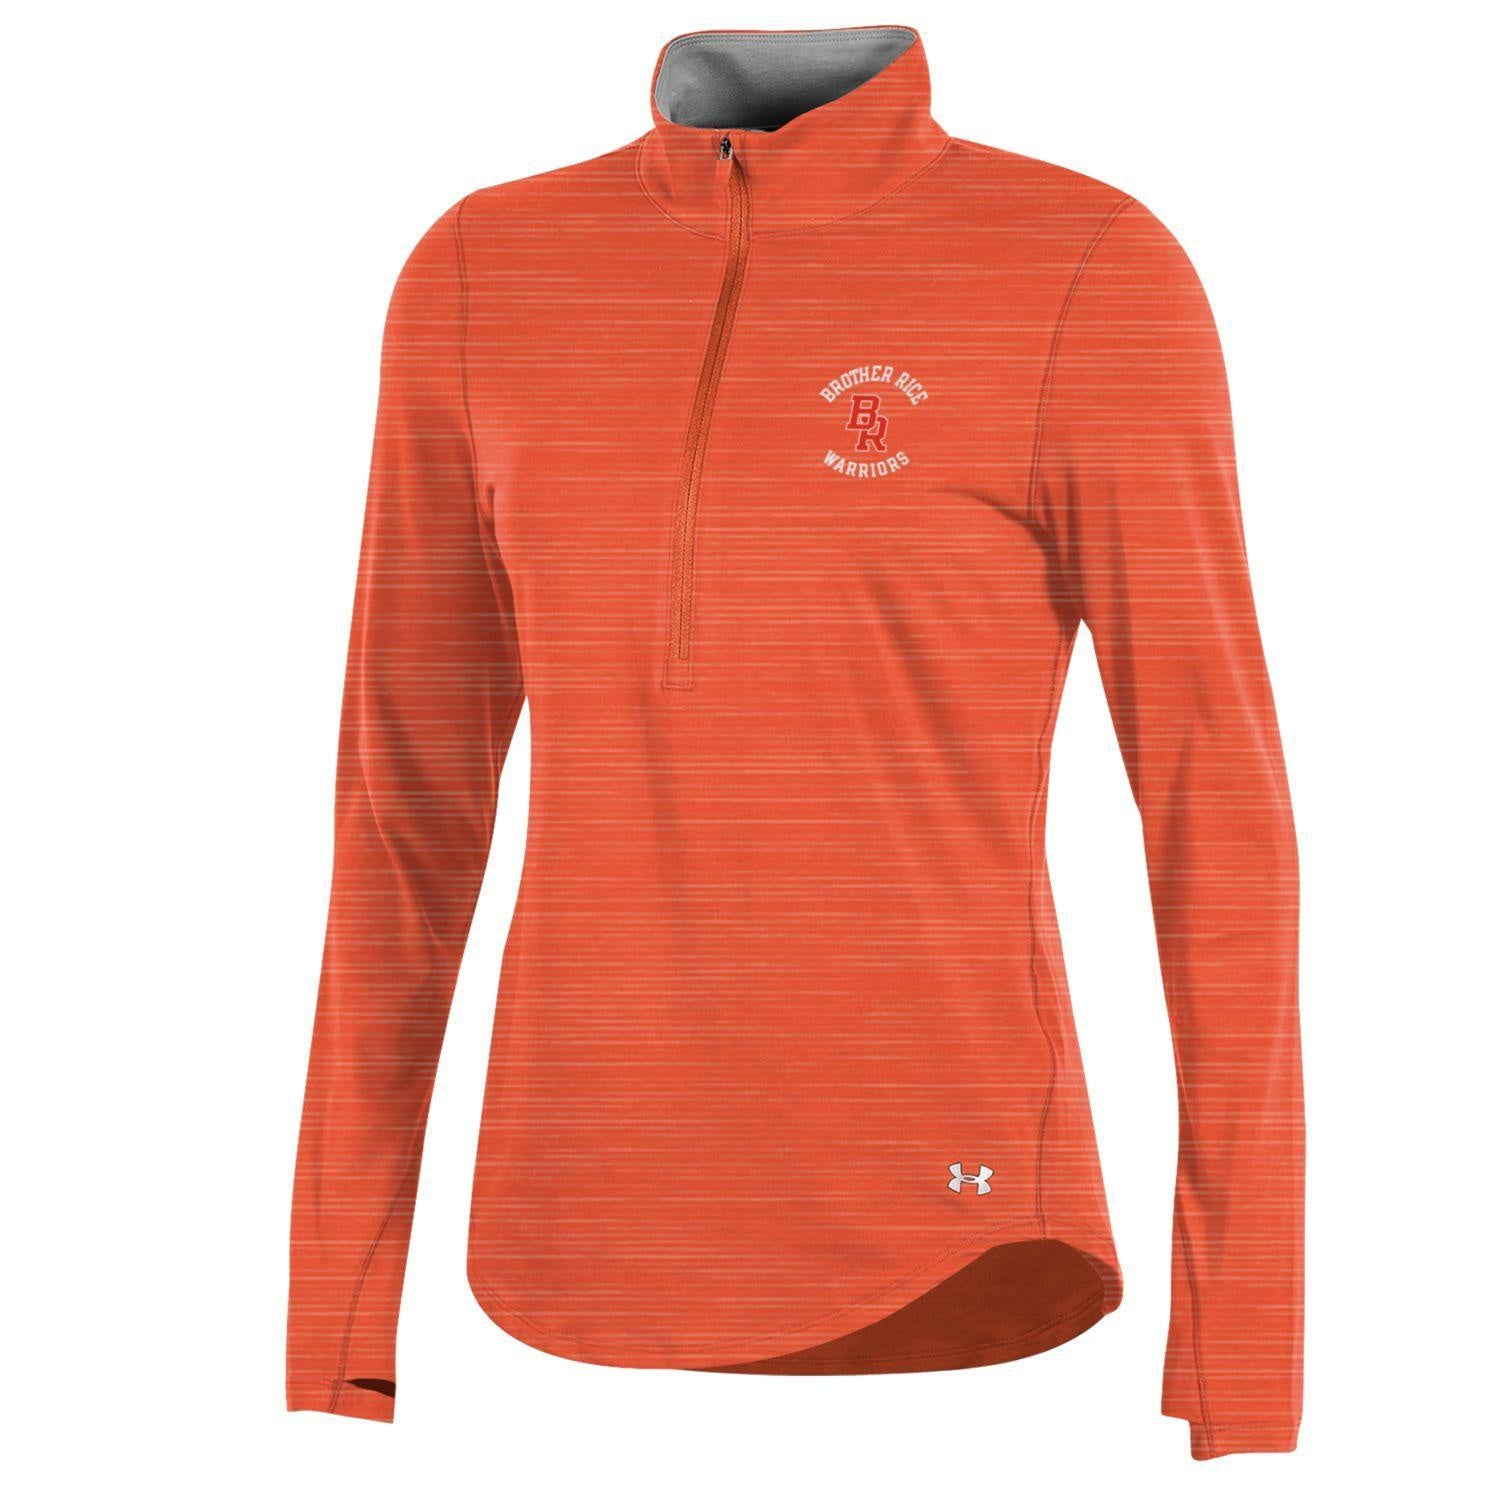 Ladies Charged Cotton 1/4 zip